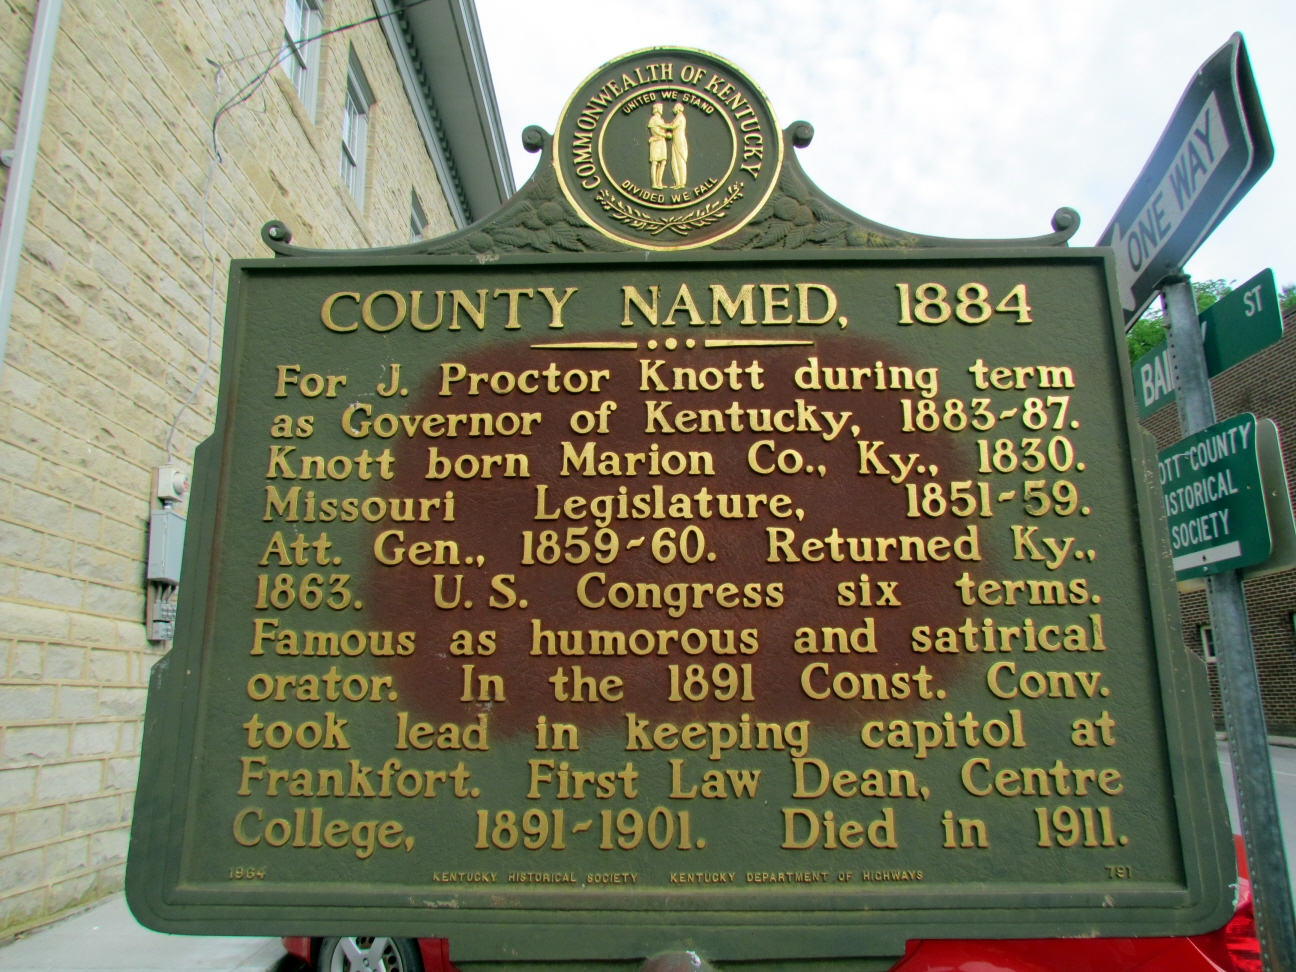 County Named, 1884 Marker